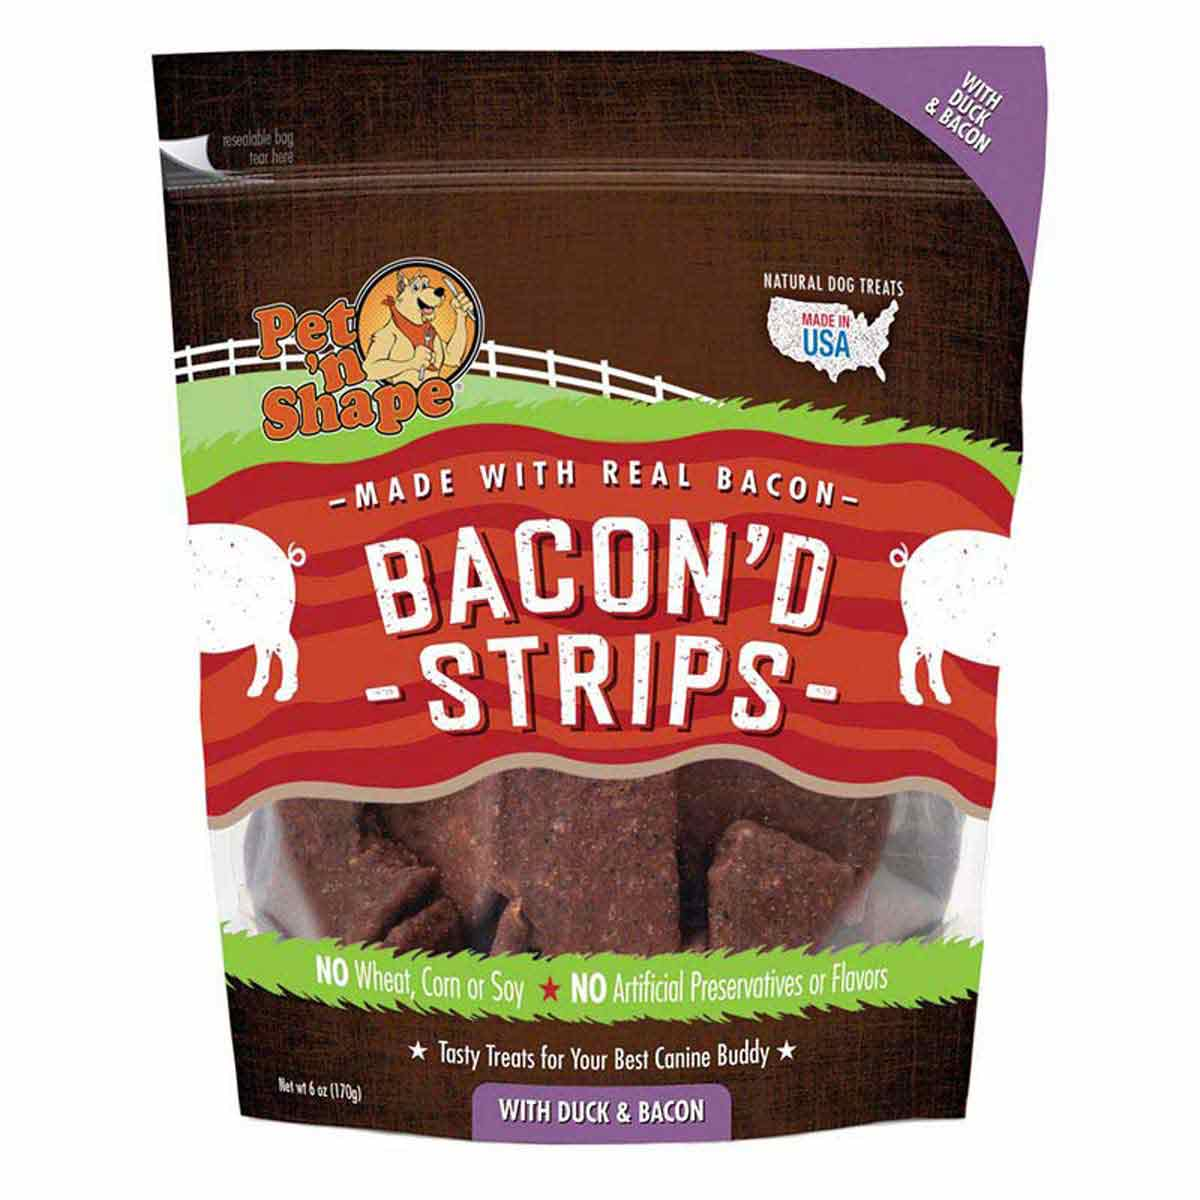 Pet 'n Shape Duck & Bacon Bacon'd Strips Treats for Dog 6 oz Bag